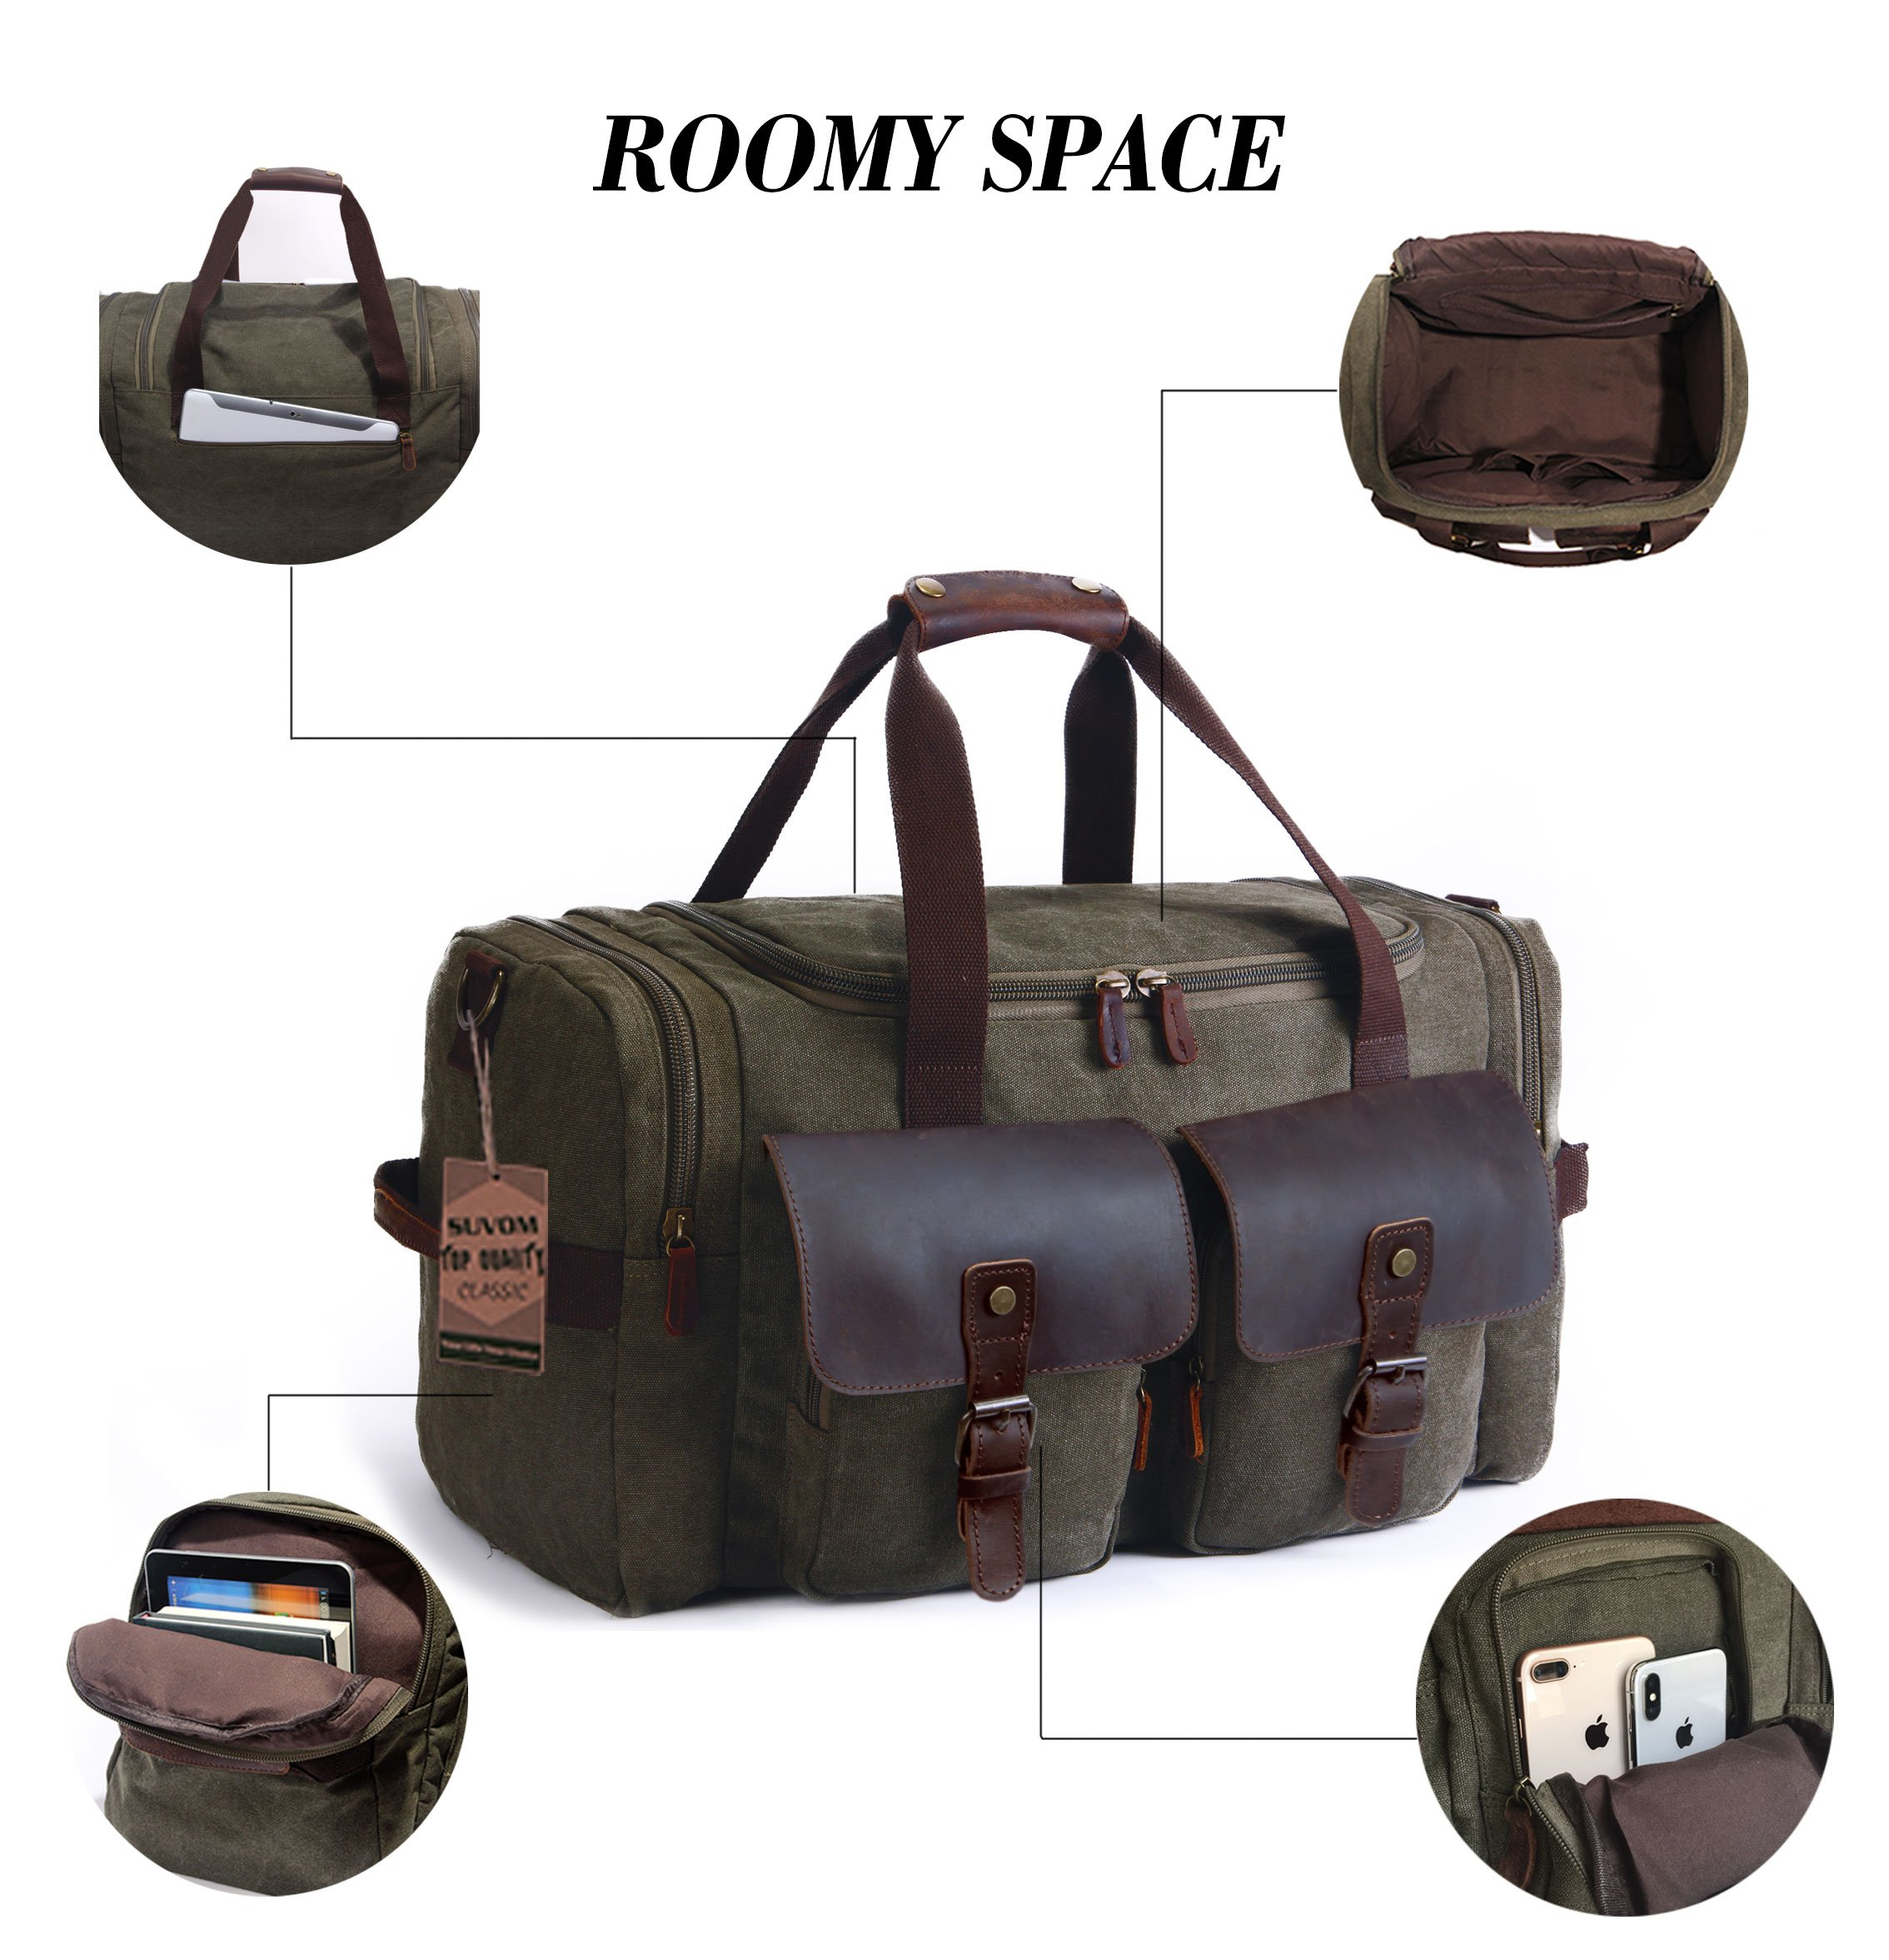 SUVOM Canvas Duffle Bag Leather Weekend Bag Carry On Travel Bag Luggage Oversized Holdalls for Men and Women(Army Green) by SUVOM (Image #2)